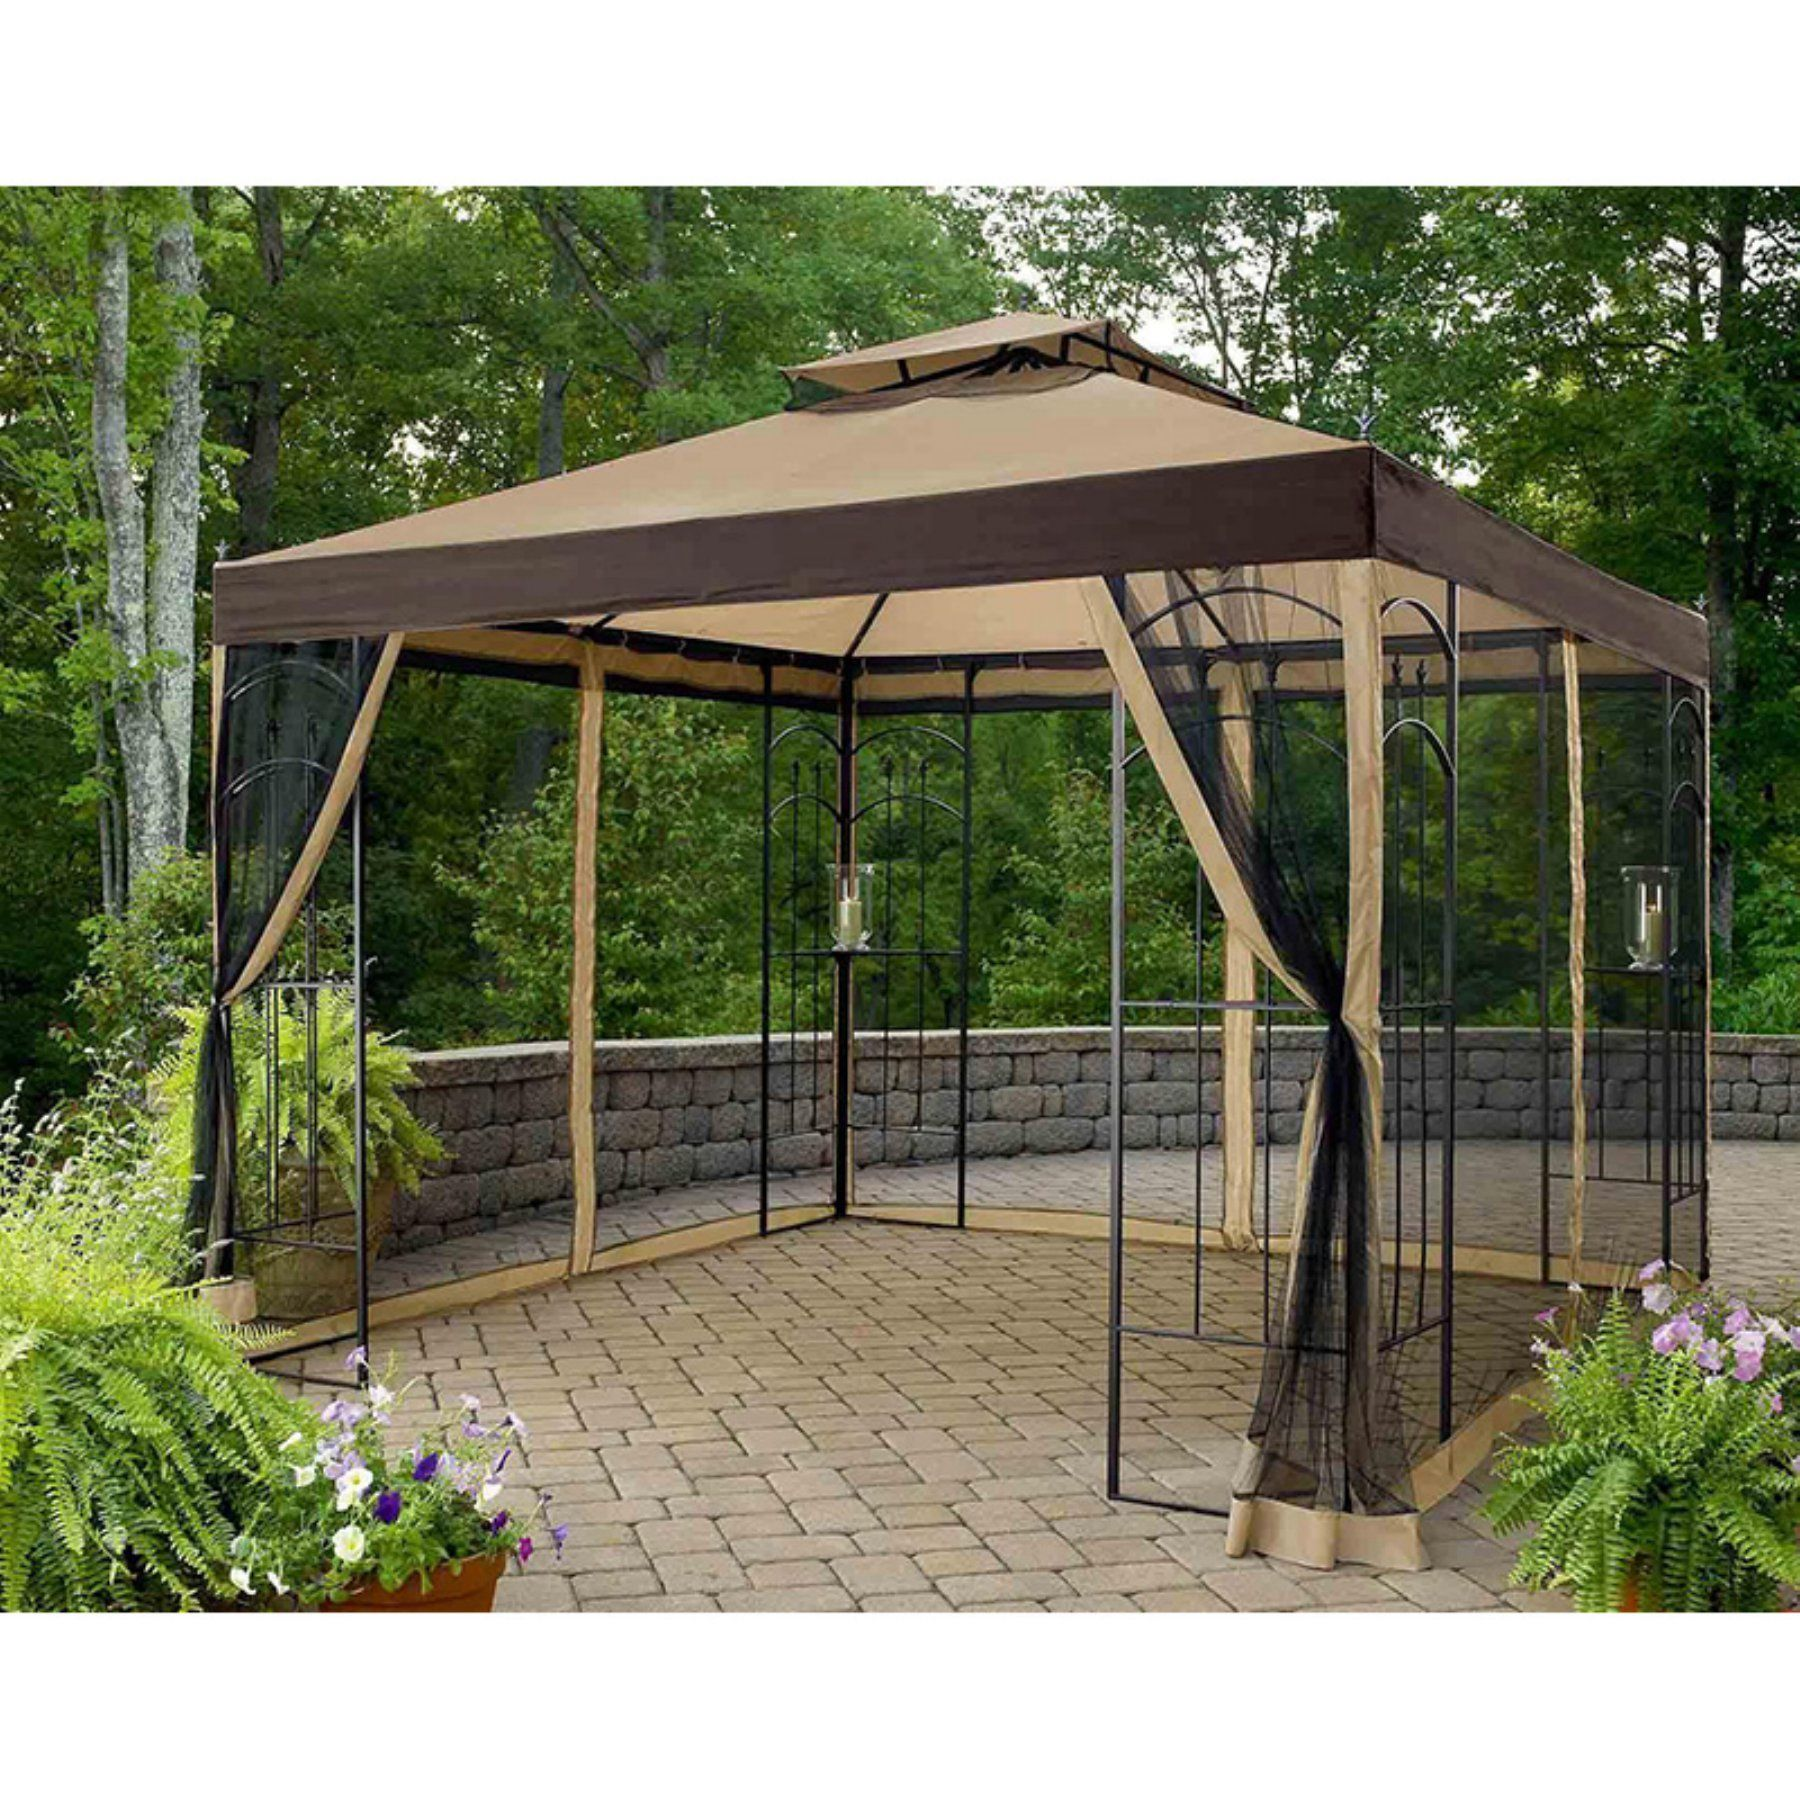 Sunjoy 10 X 10 Ft Replacement Canopy Cover For L Gz038pst 3a Winslow Gazebo 110109339 Gazebo Canopy Gazebo Pergola